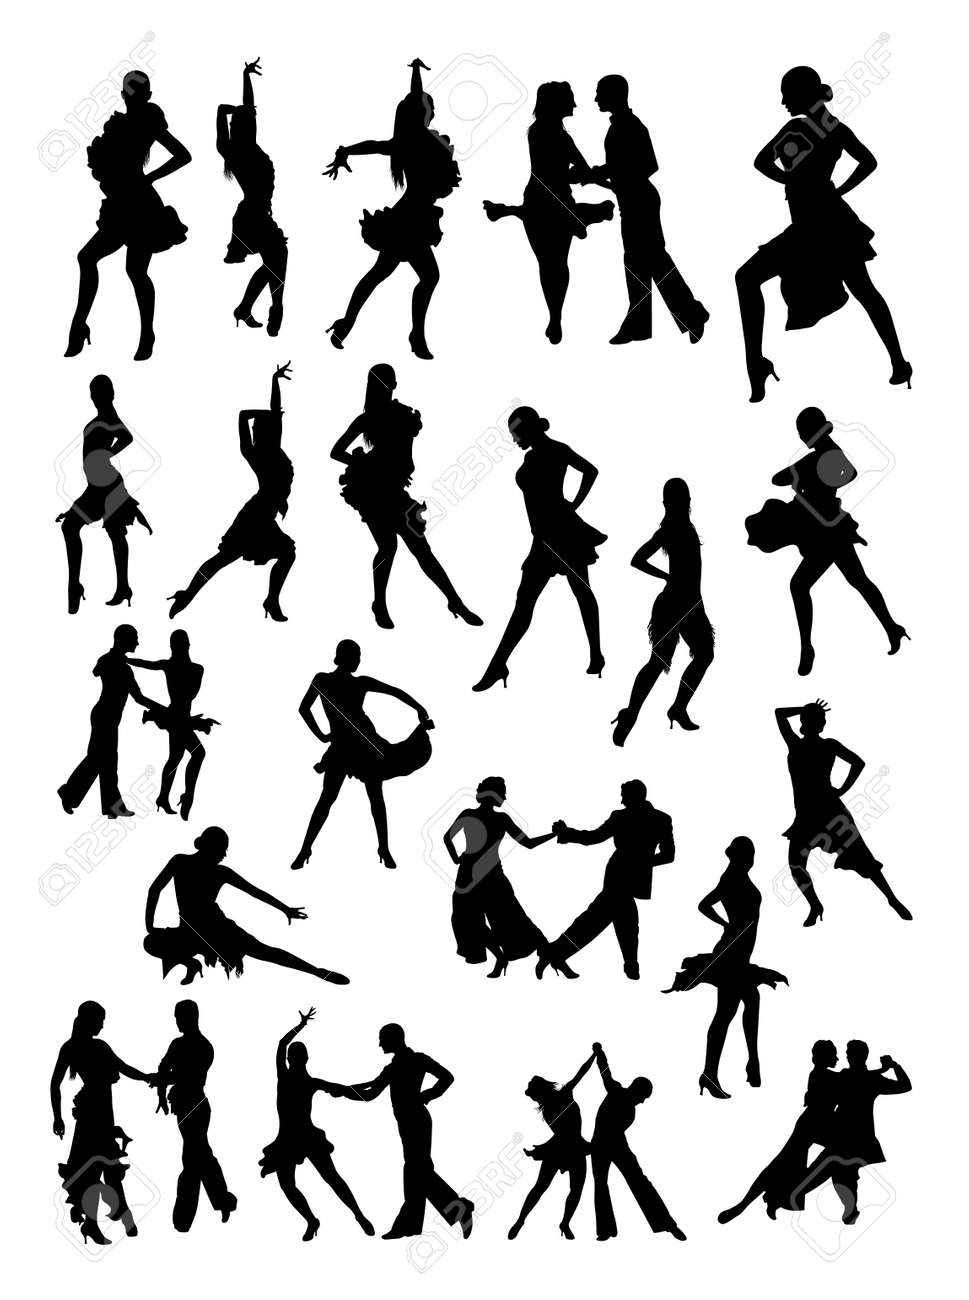 Salsa Dancer Silhouette In Black And White Royalty Free Cliparts Vectors And Stock Illustration Image 96792437